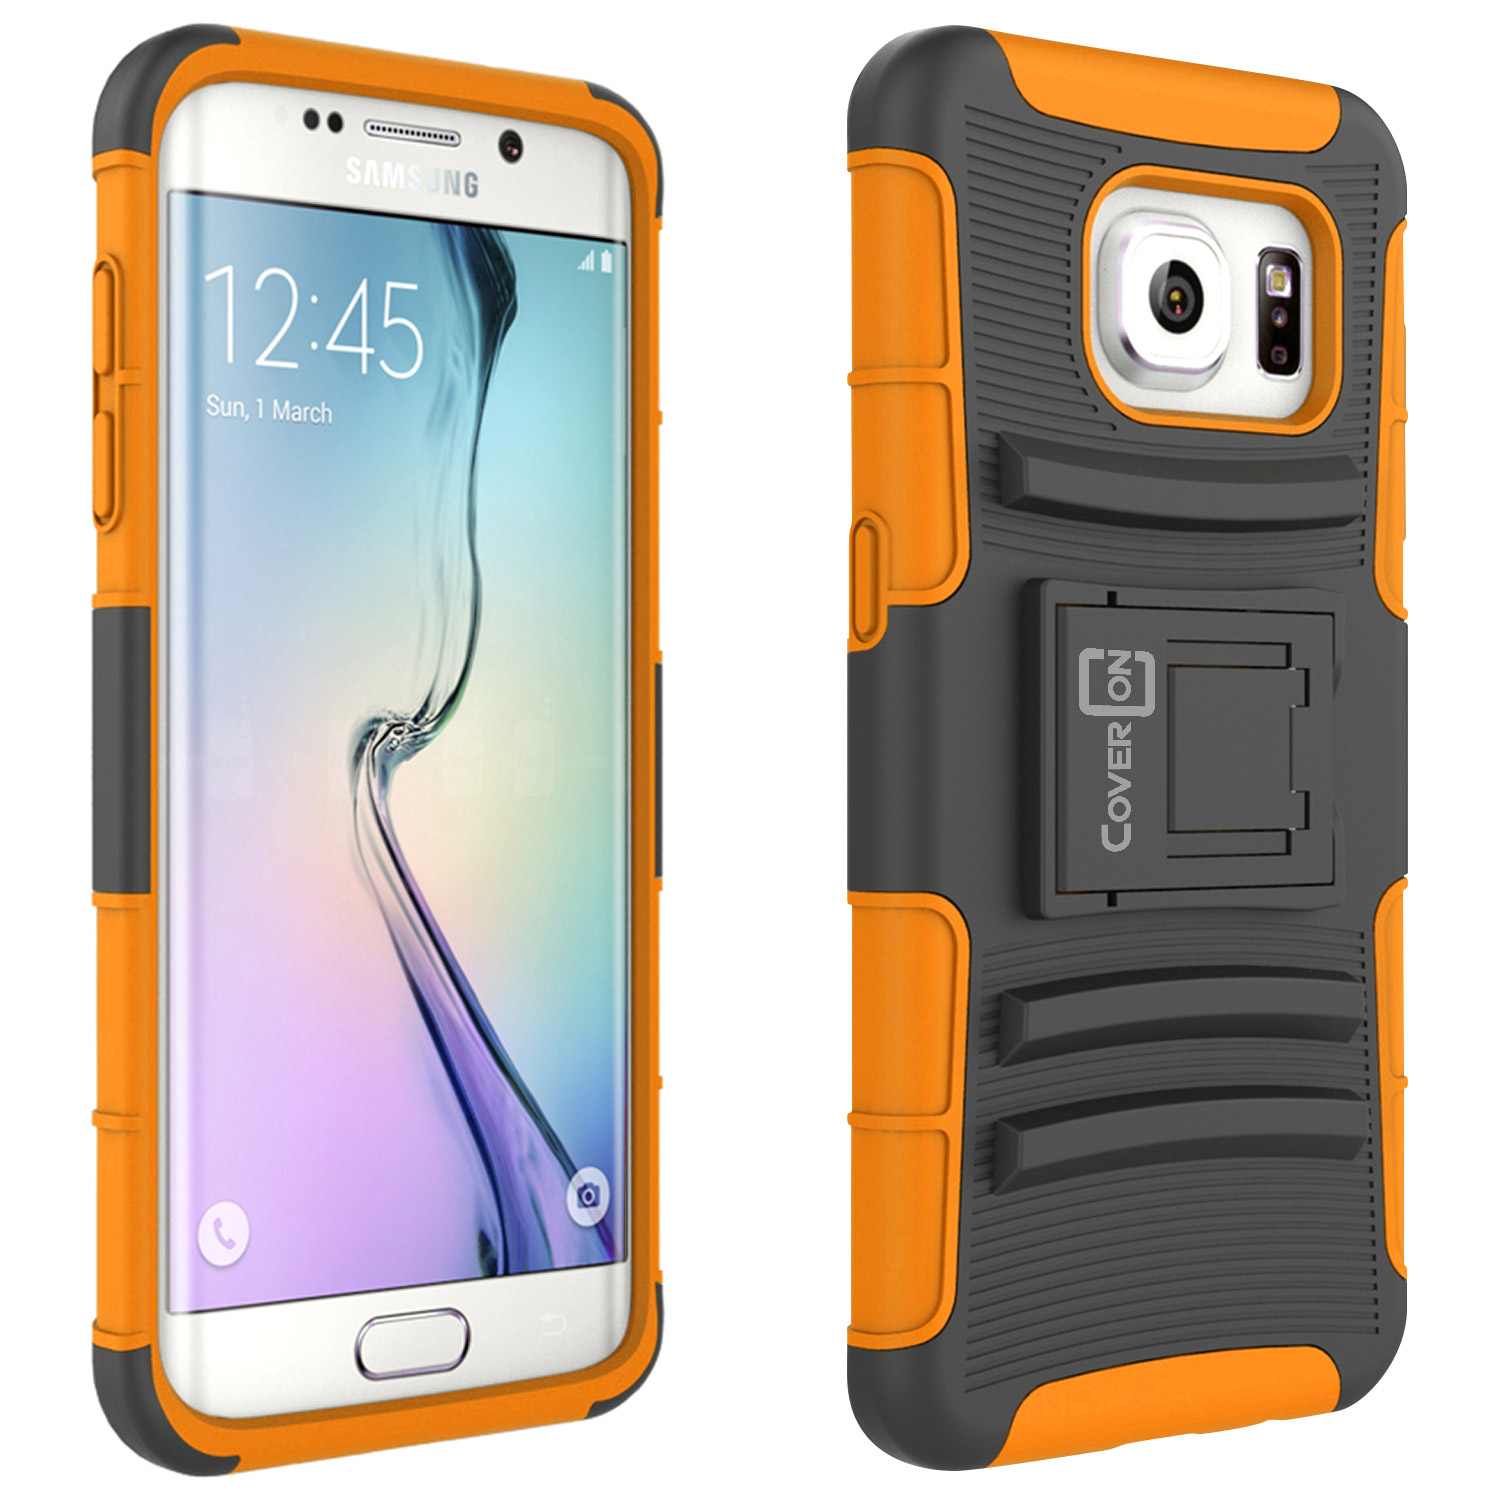 CoverON Samsung Galaxy S7 Edge Case, Explorer Series Protective Holster Belt Clip Phone Cover